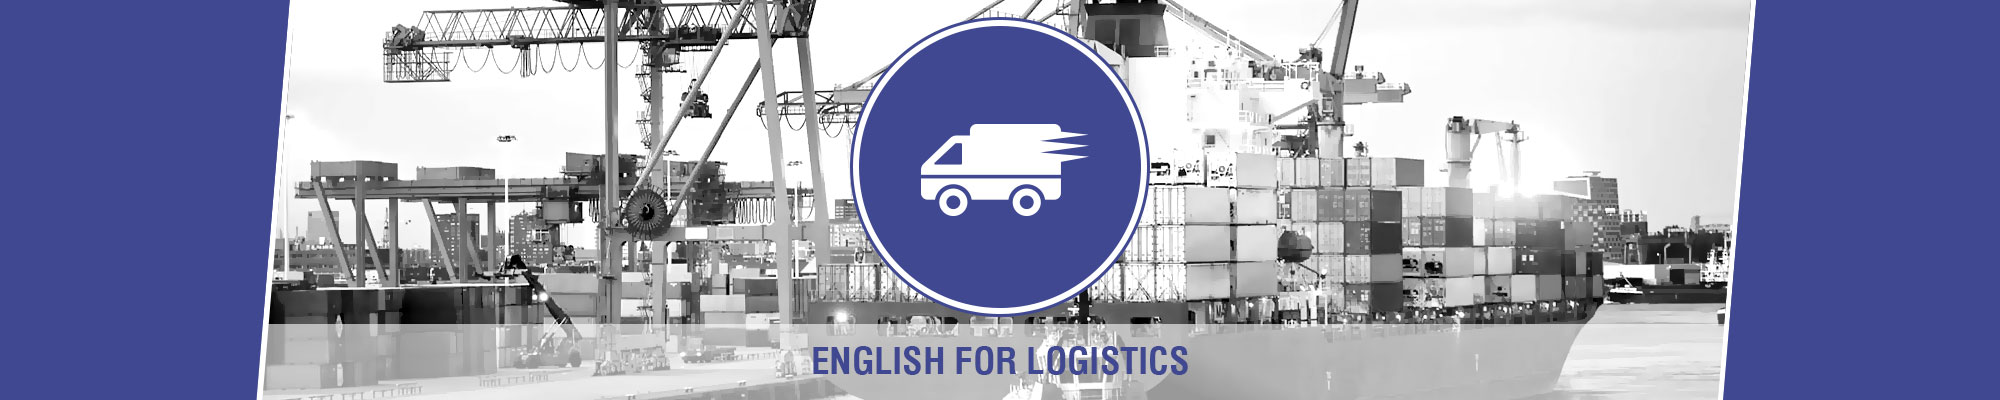 Anglokom Corporate Language Training Bangkok - English for Logistics